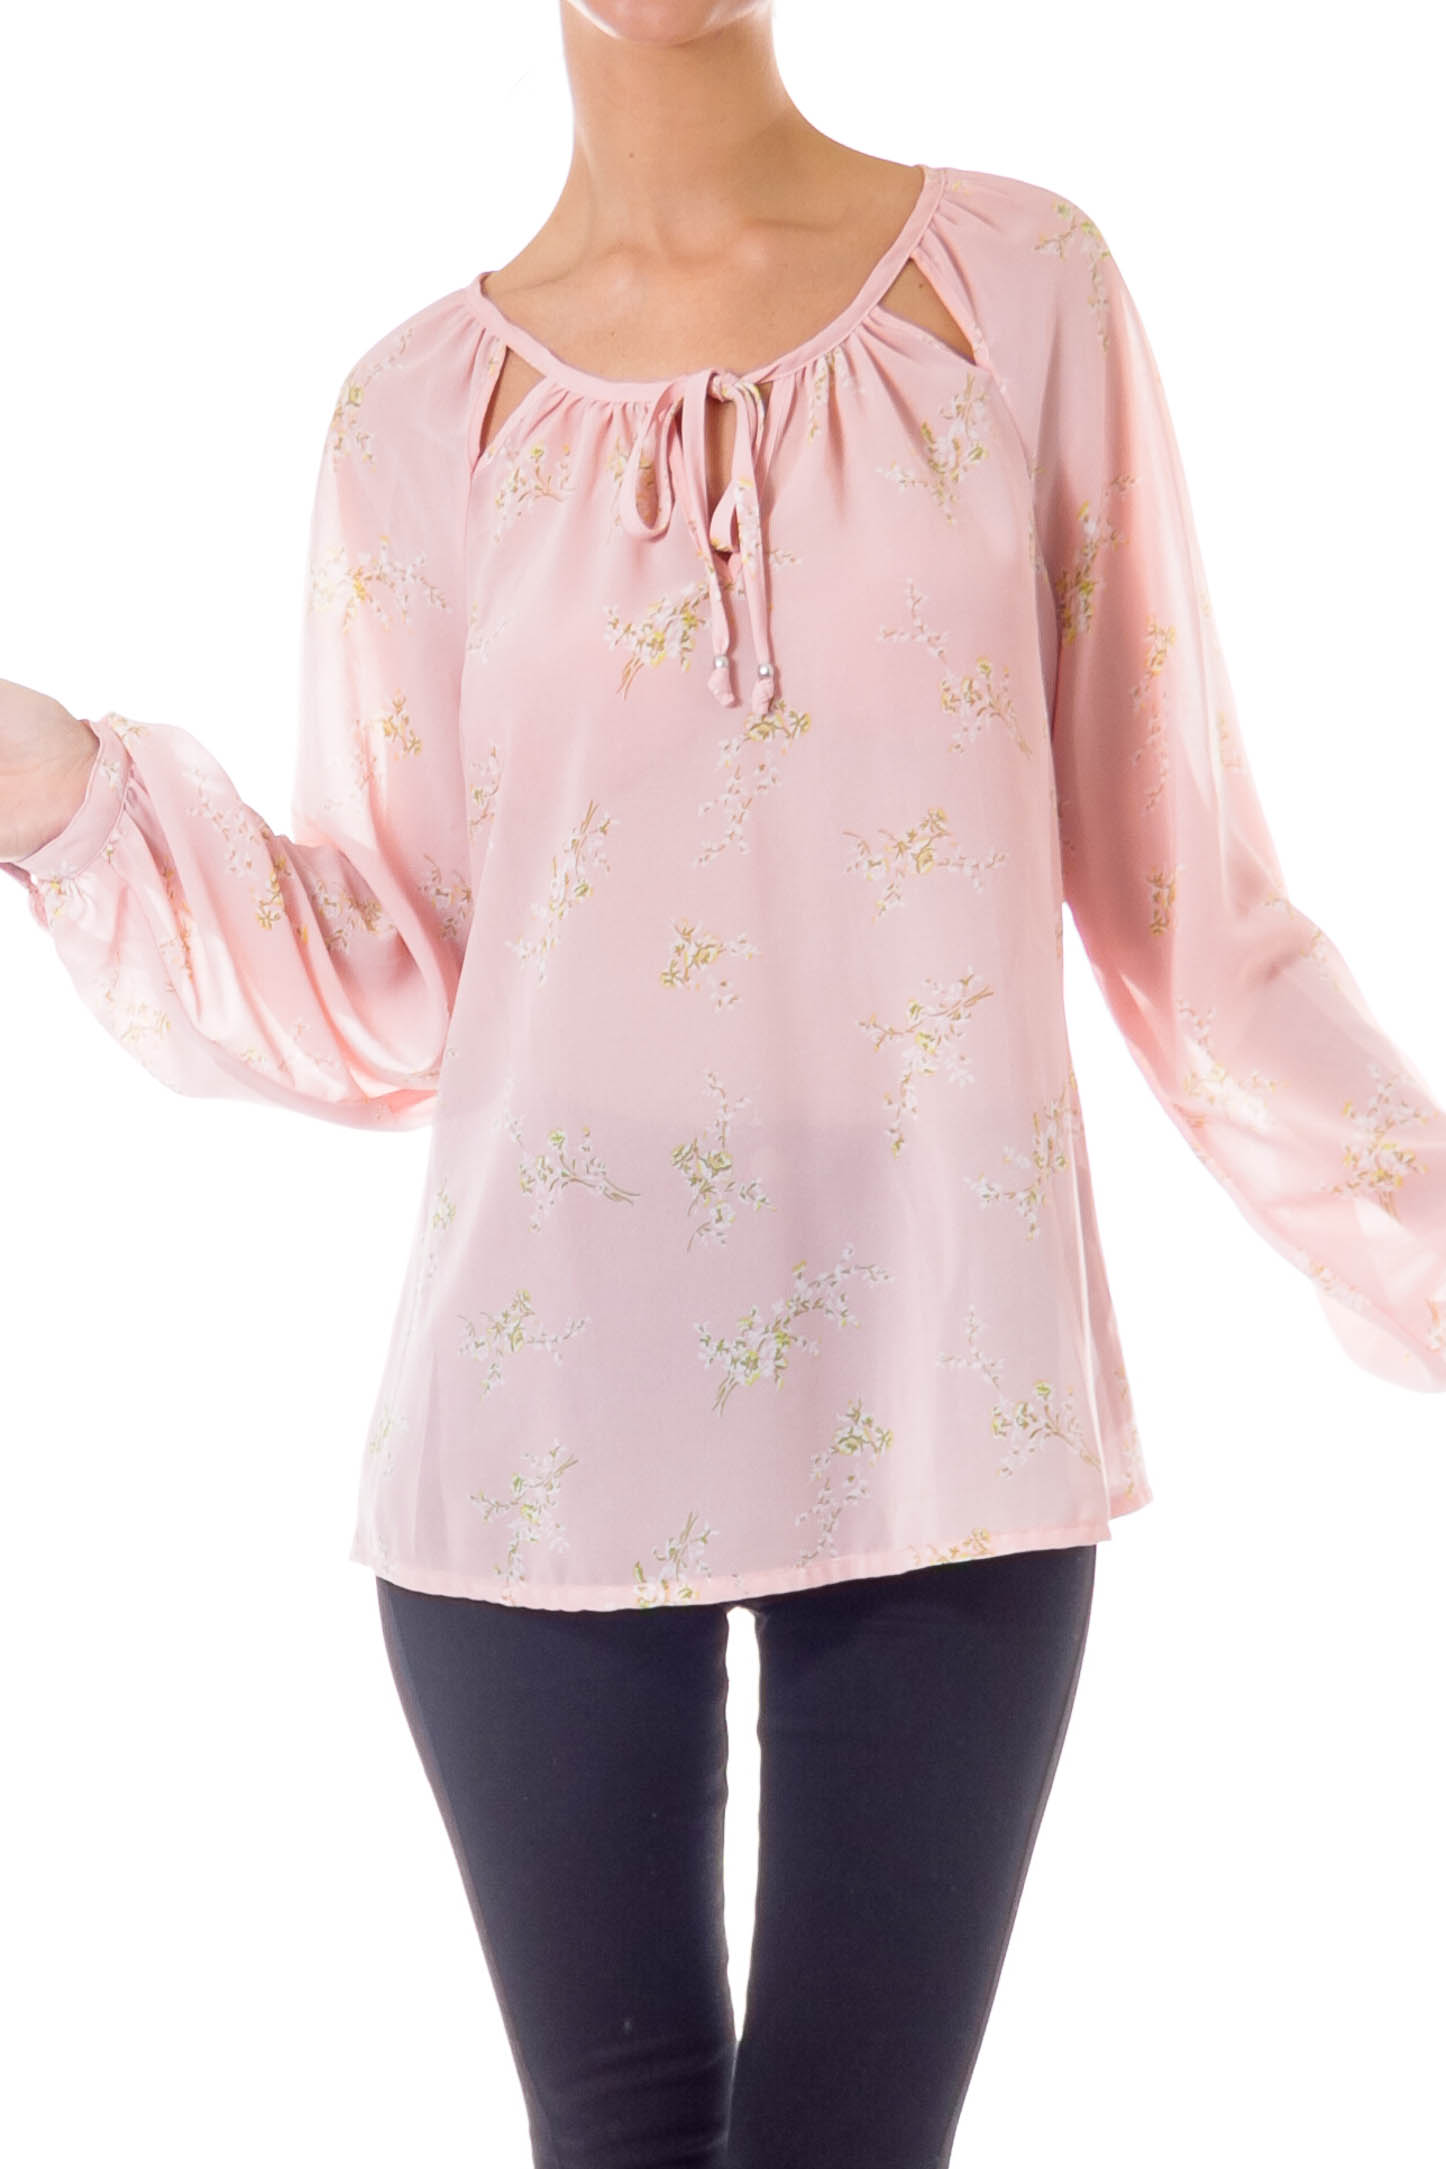 Shop Rose Olive Clothing And Handbags At Silkroll Trade With Us